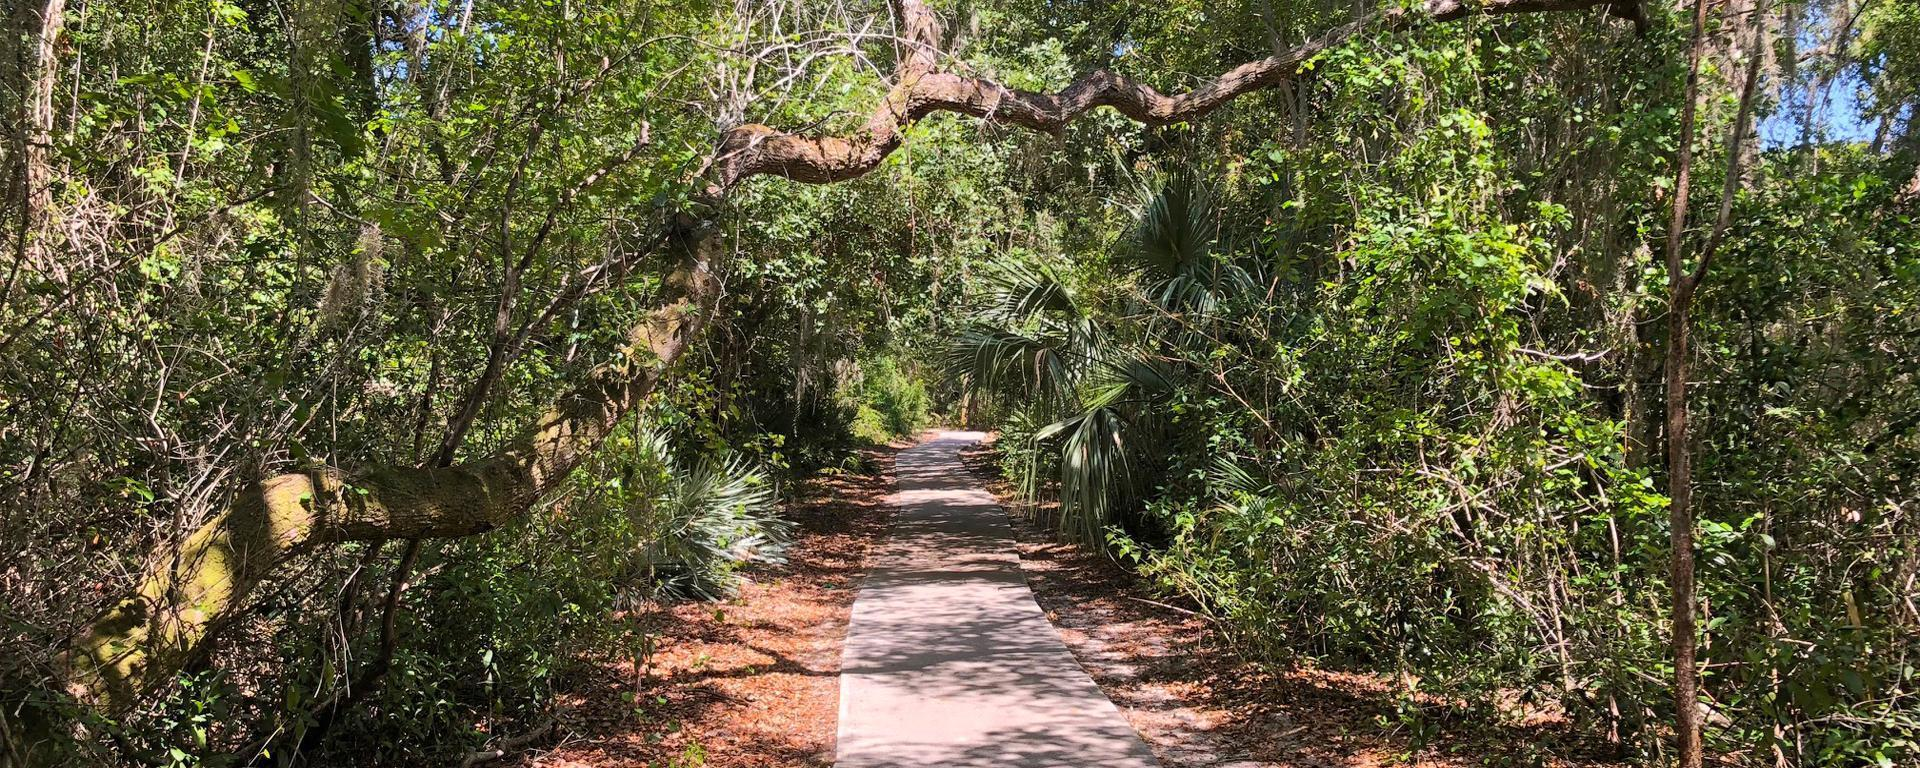 A trail in Maggy's Hammock Park